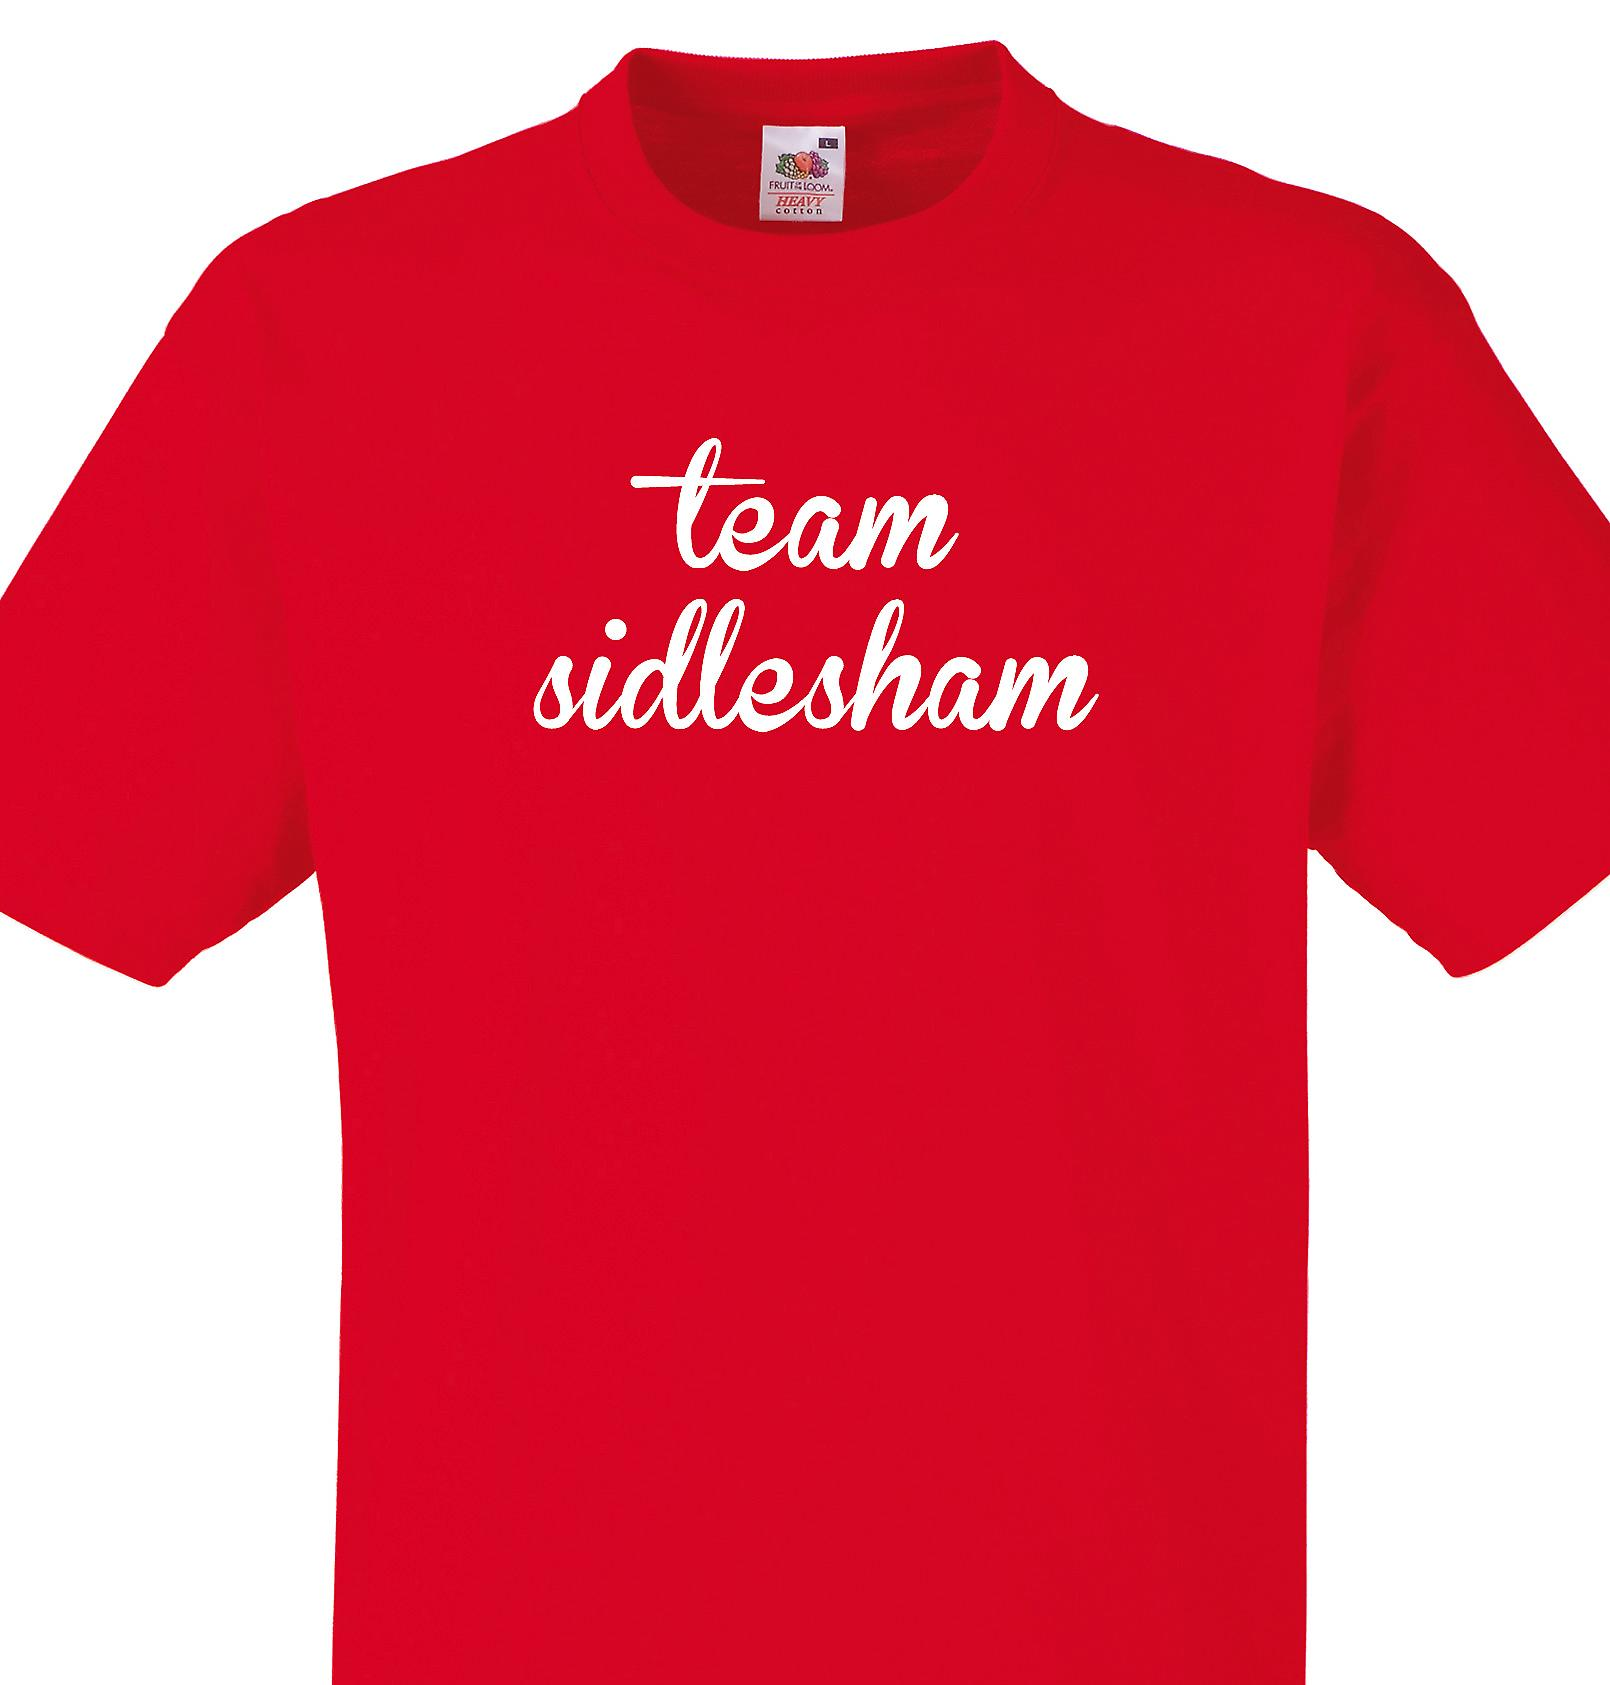 Team Sidlesham Red T shirt